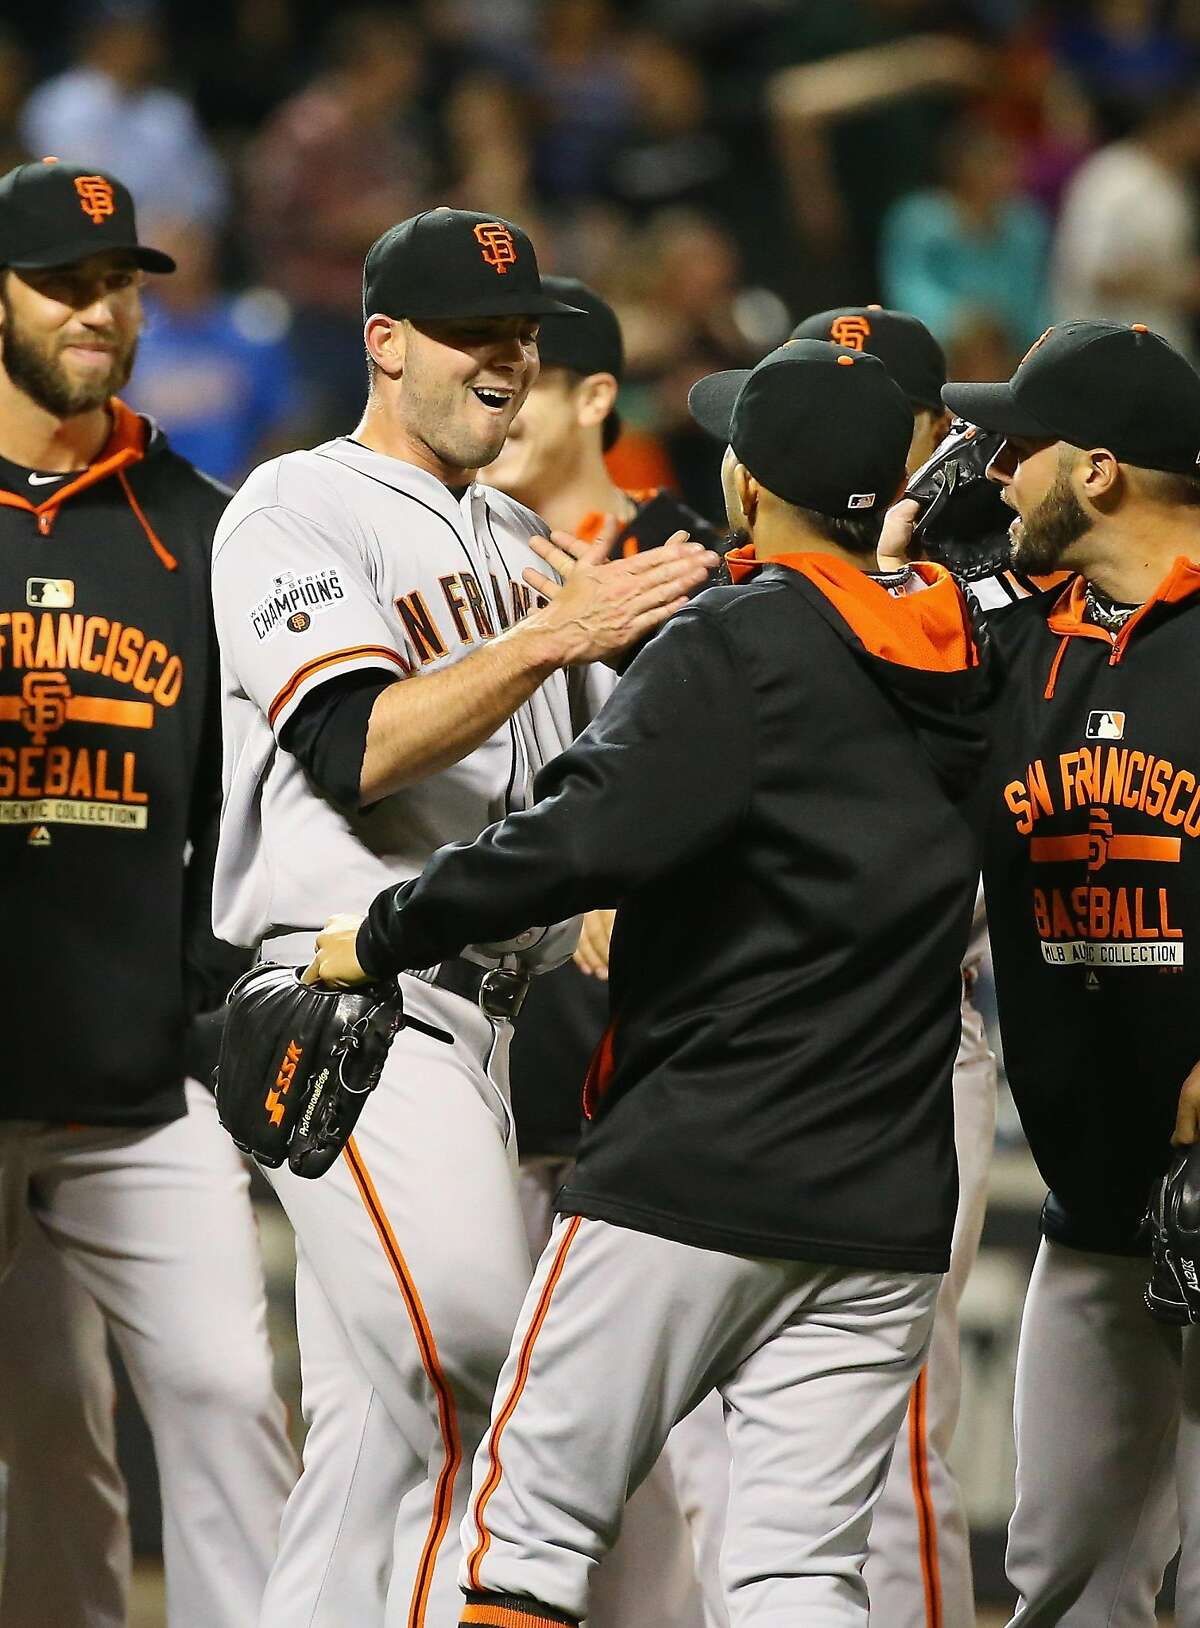 NEW YORK, NY - JUNE 09: Chris Heston #53 of the San Francisco Giants celebrates his no hitter with teamates against the New York Mets after their game at Citi Field on June 9, 2015 in New York City. (Photo by Al Bello/Getty Images)